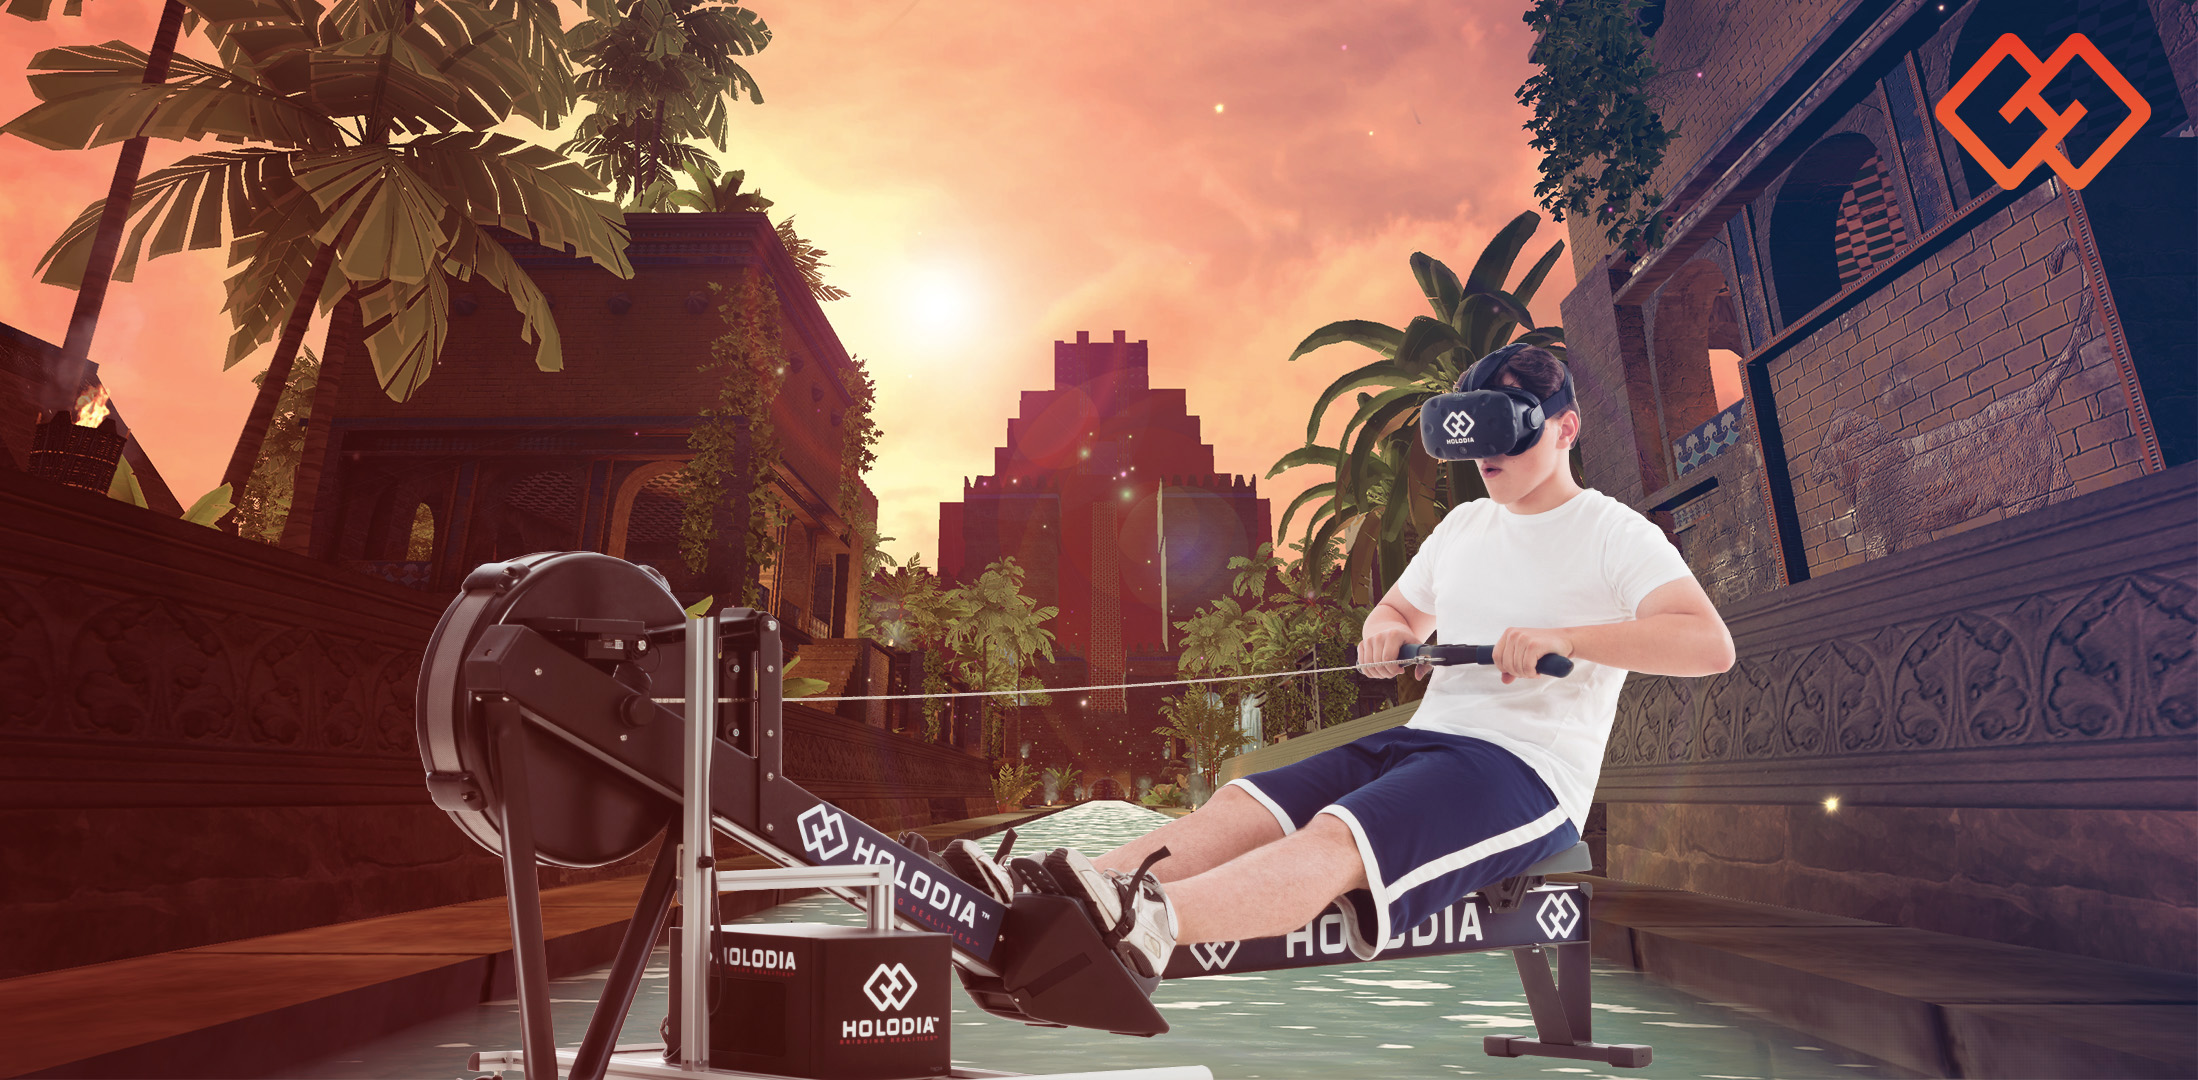 The Most Advanced VR Fitness Cardio Workout Platform, HOLOFIT Releases New Environment Cyberpunk